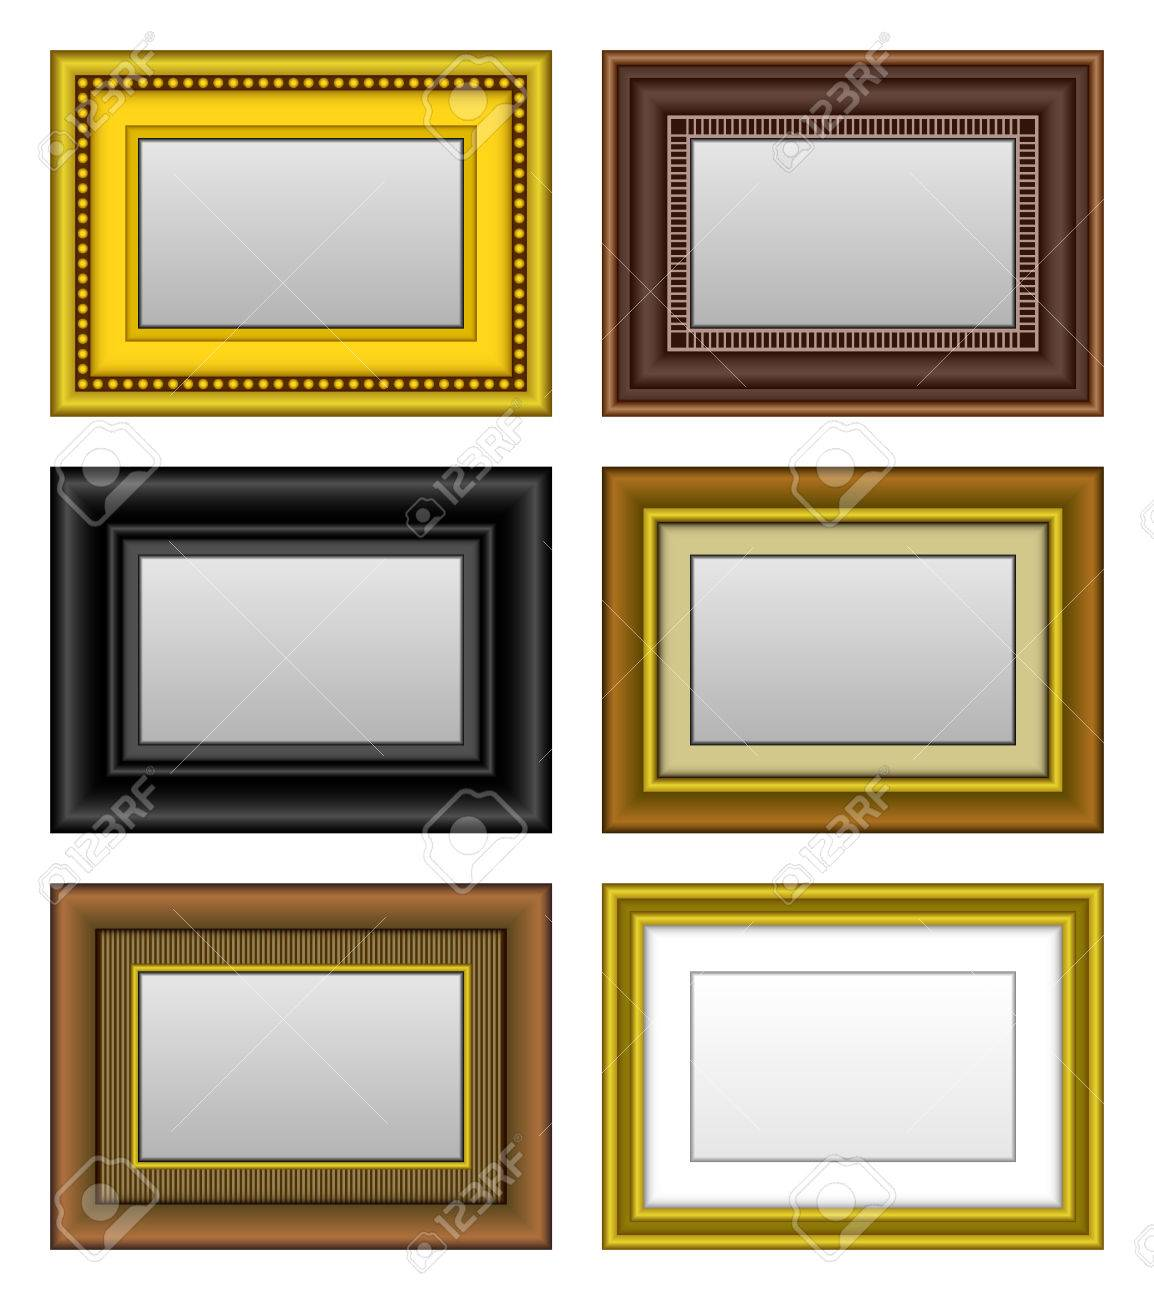 Frame Picture Photo Mirror Stock Vector - 8513522